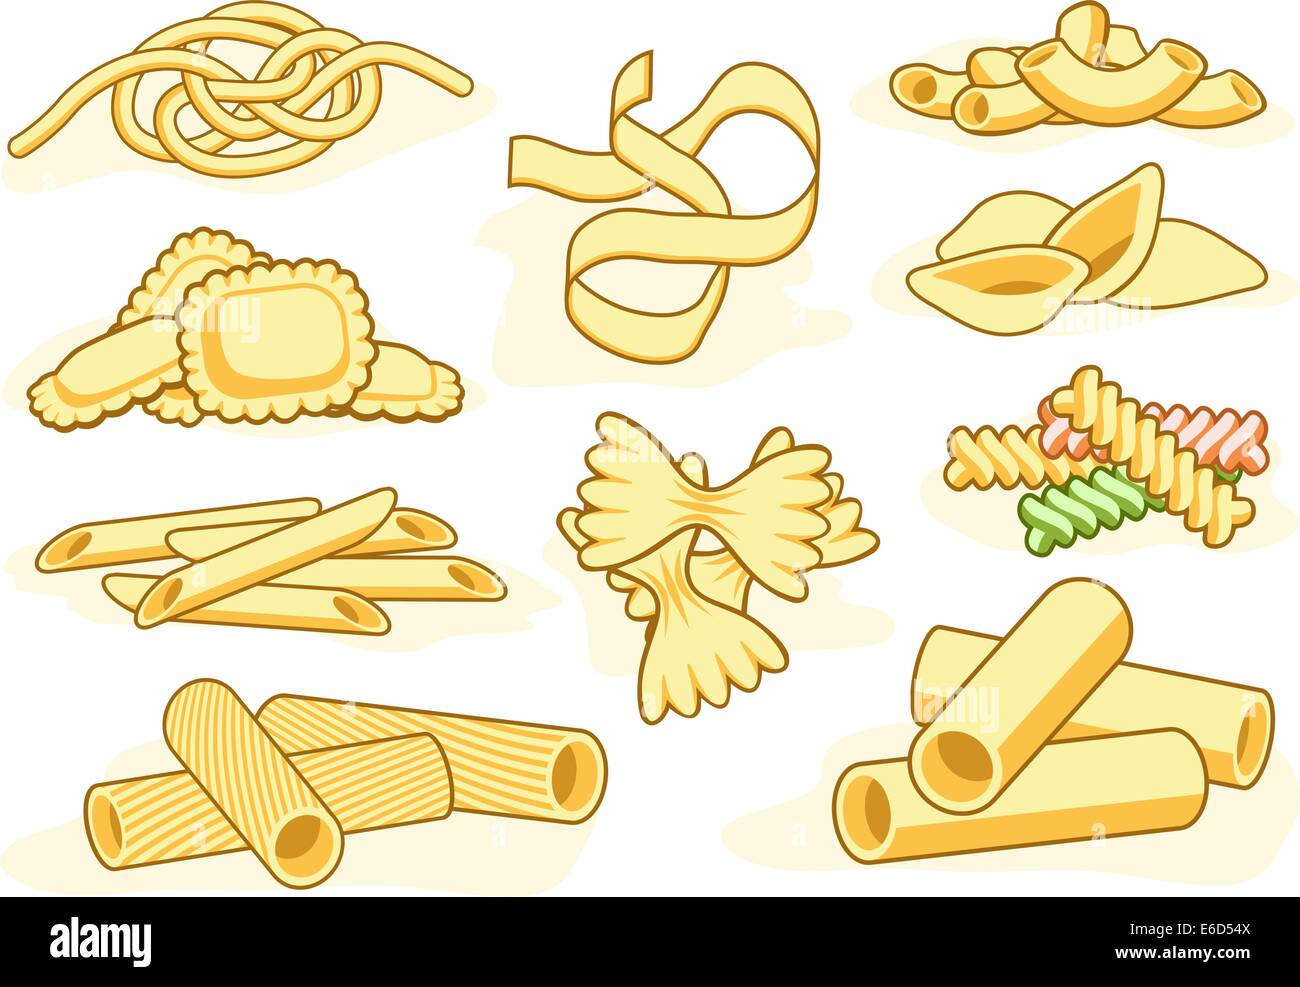 Set of editable vector icons of different pasta shapes Stock Vector